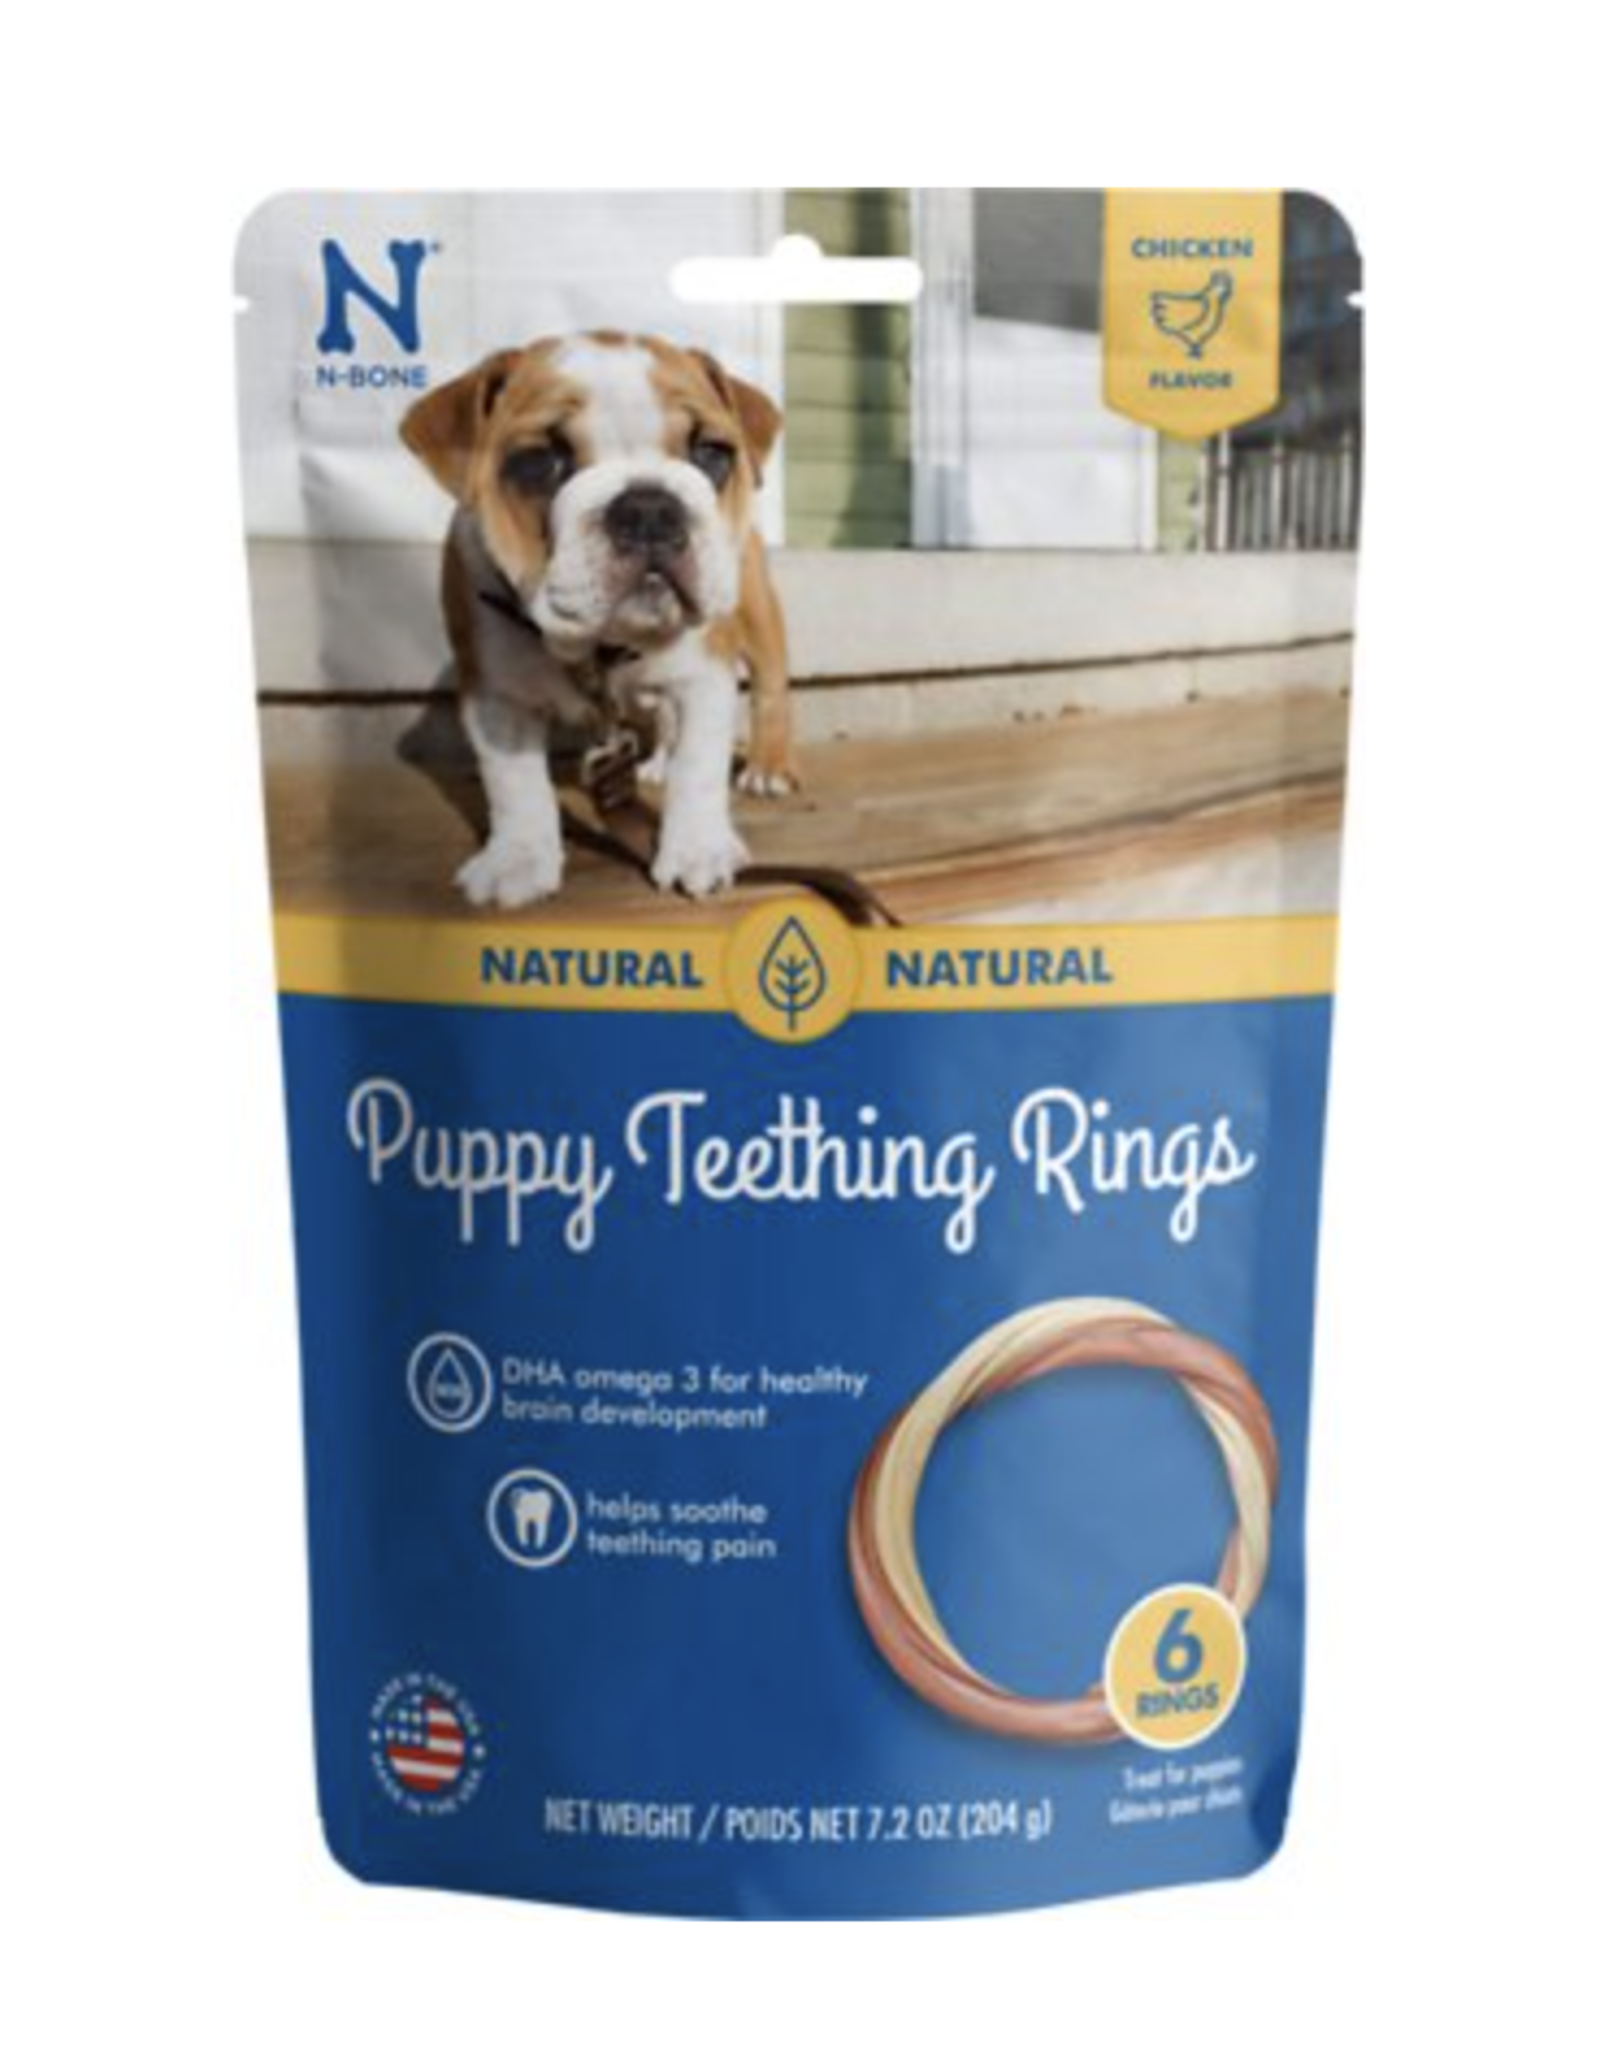 N-Bone N-Bone Puppy Teething Ring - Chicken Flavor